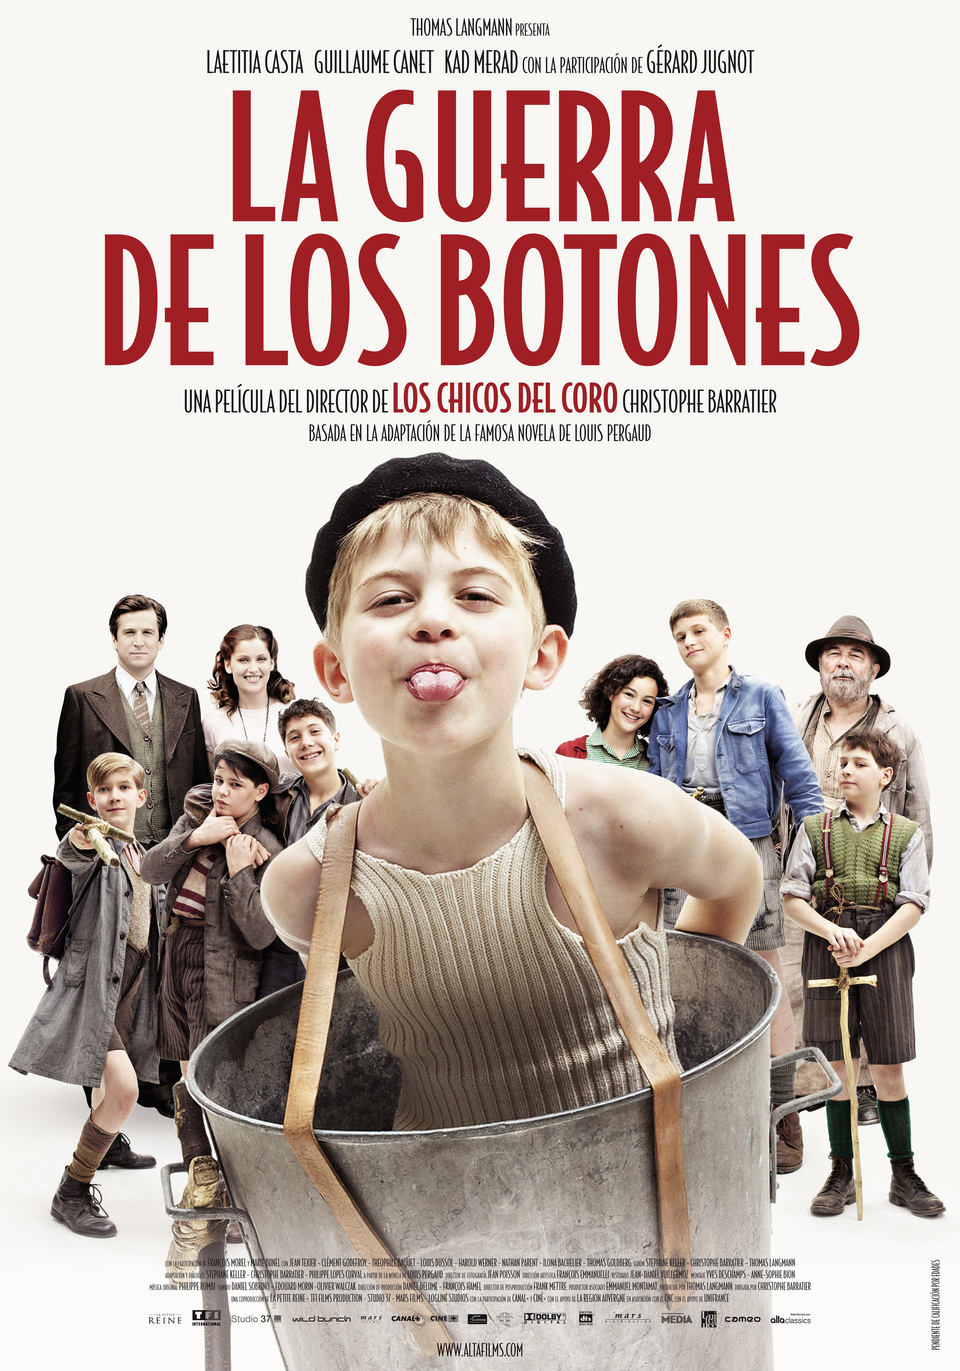 España poster for War of the Buttons